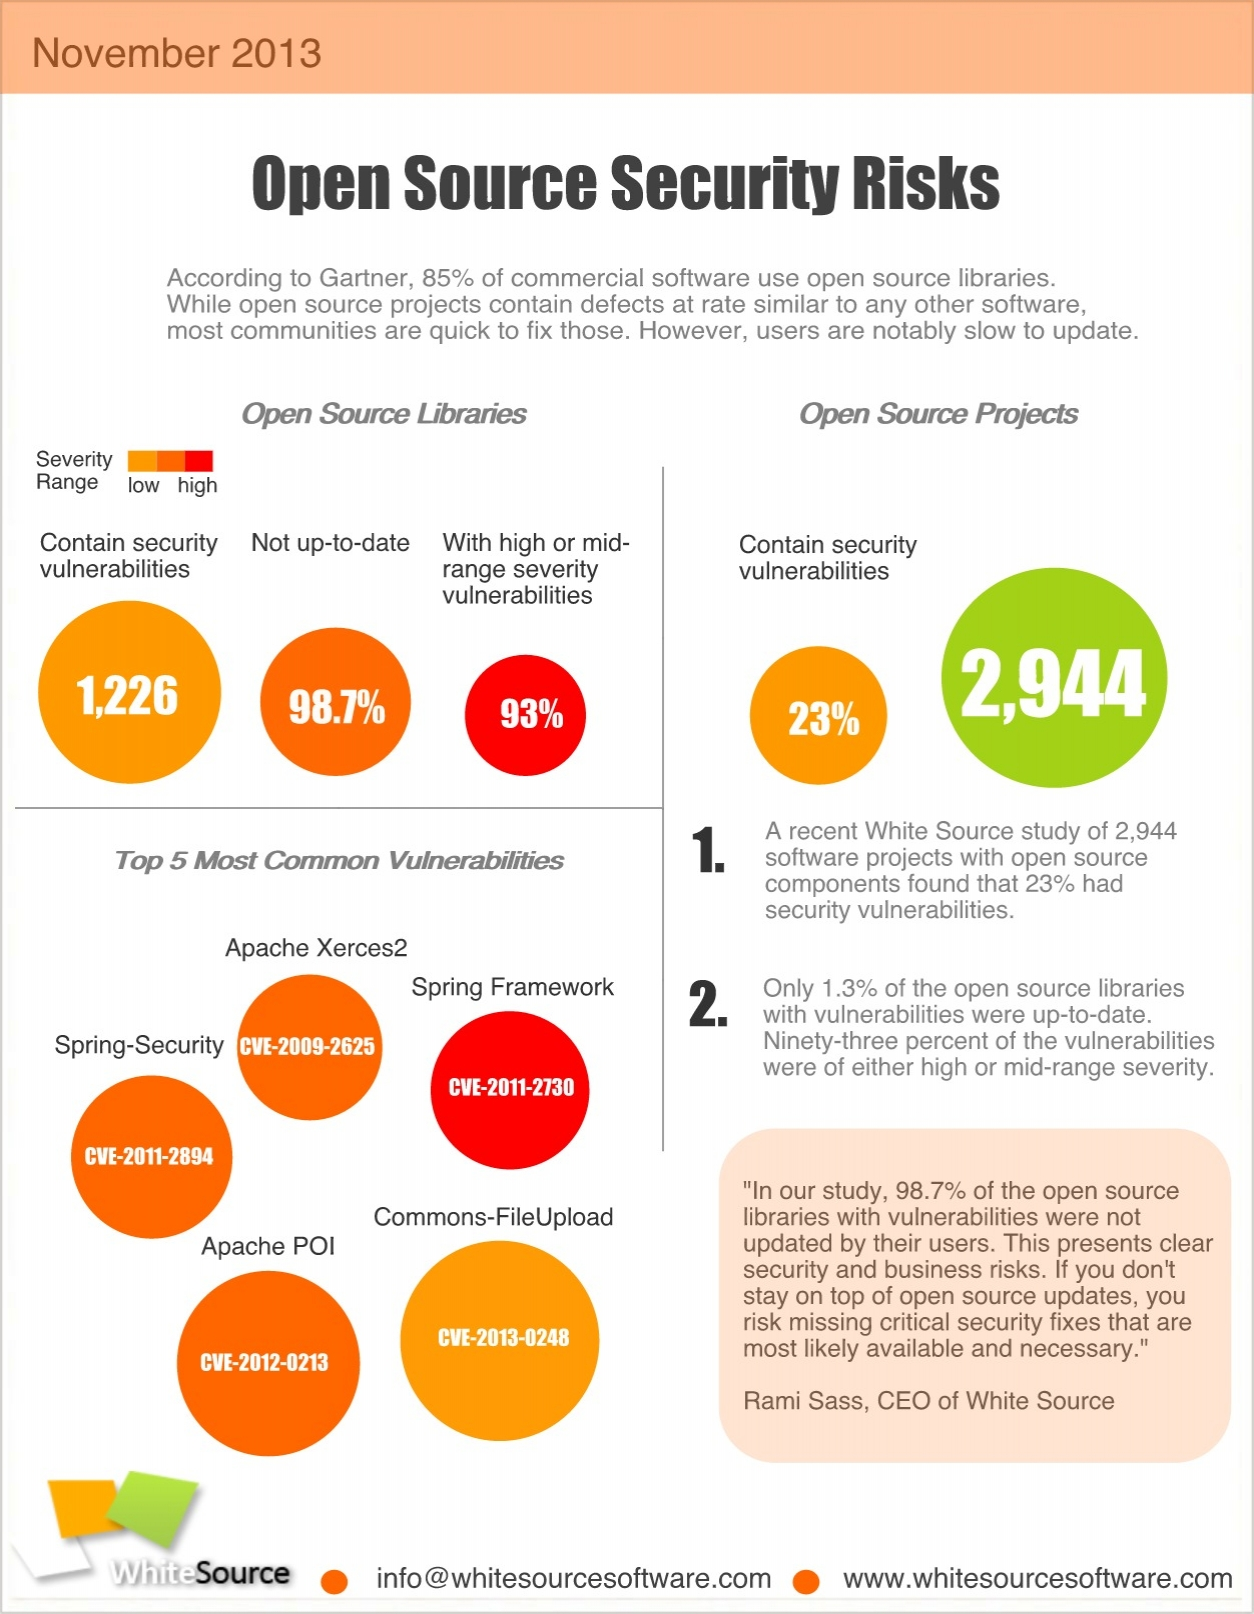 Open Source Security Management Neglected By Most Software